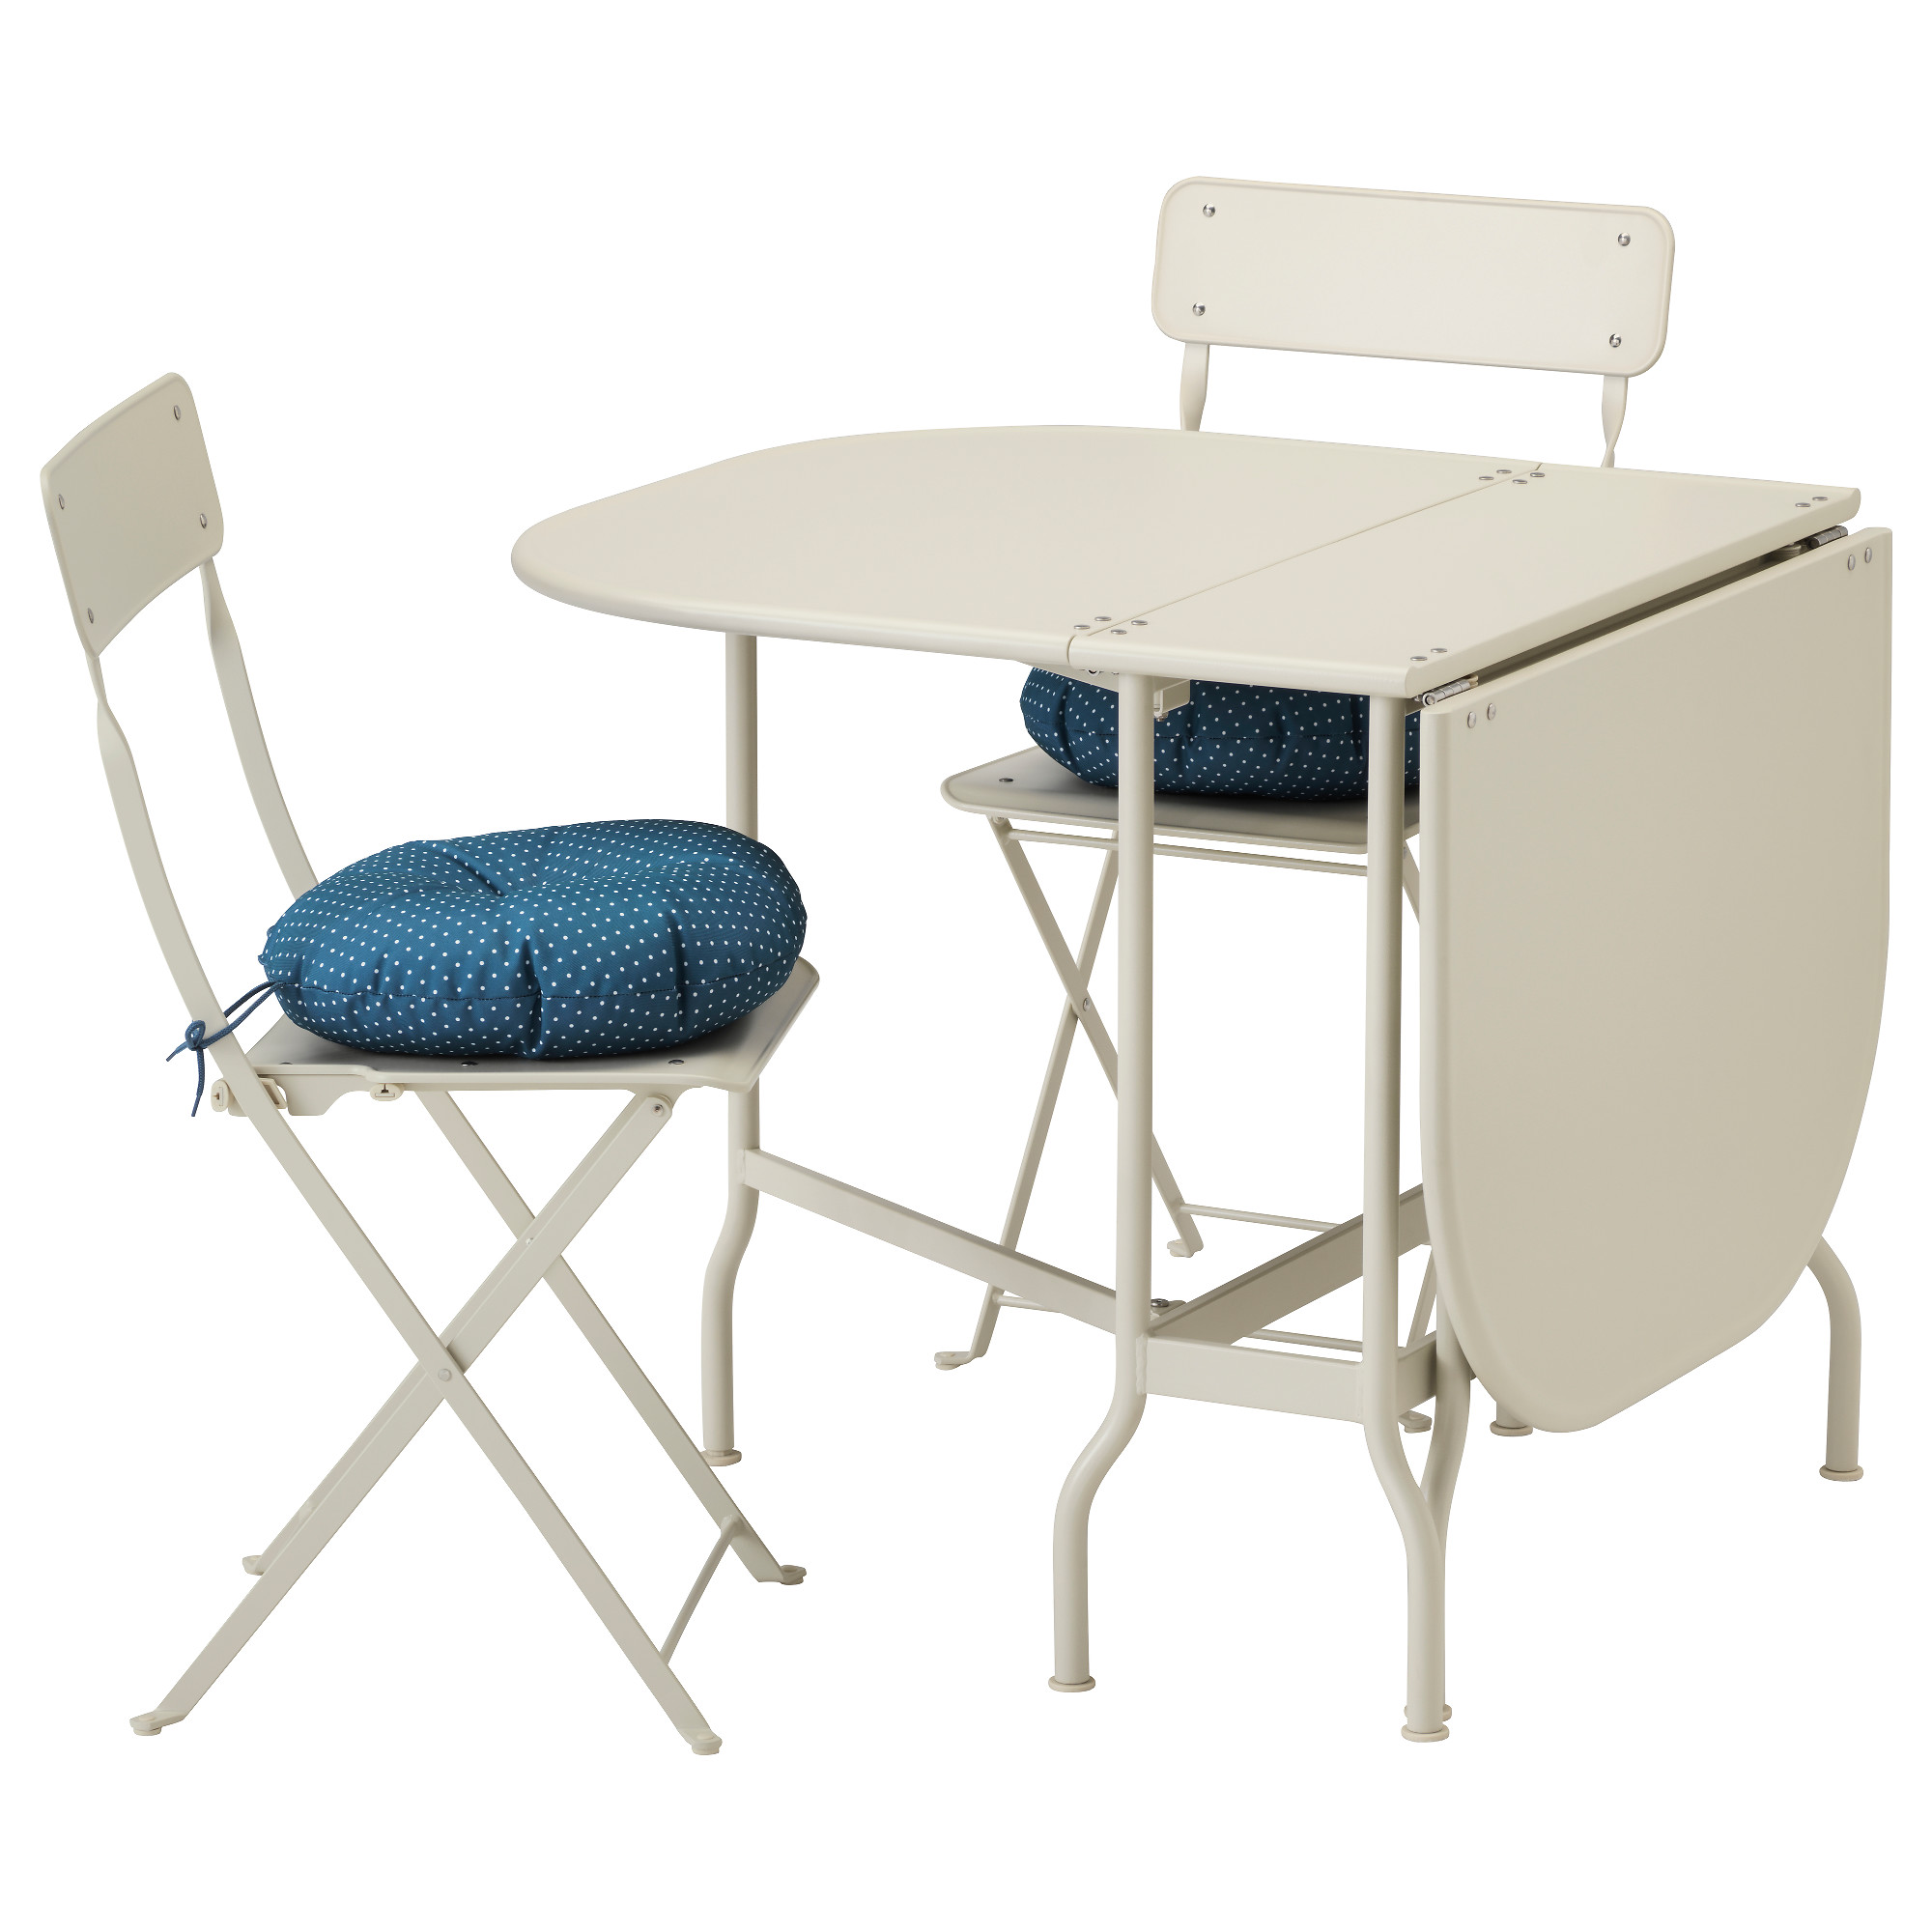 SALTHOLMEN Table 2 folding chairs outdoor Saltholmen beige